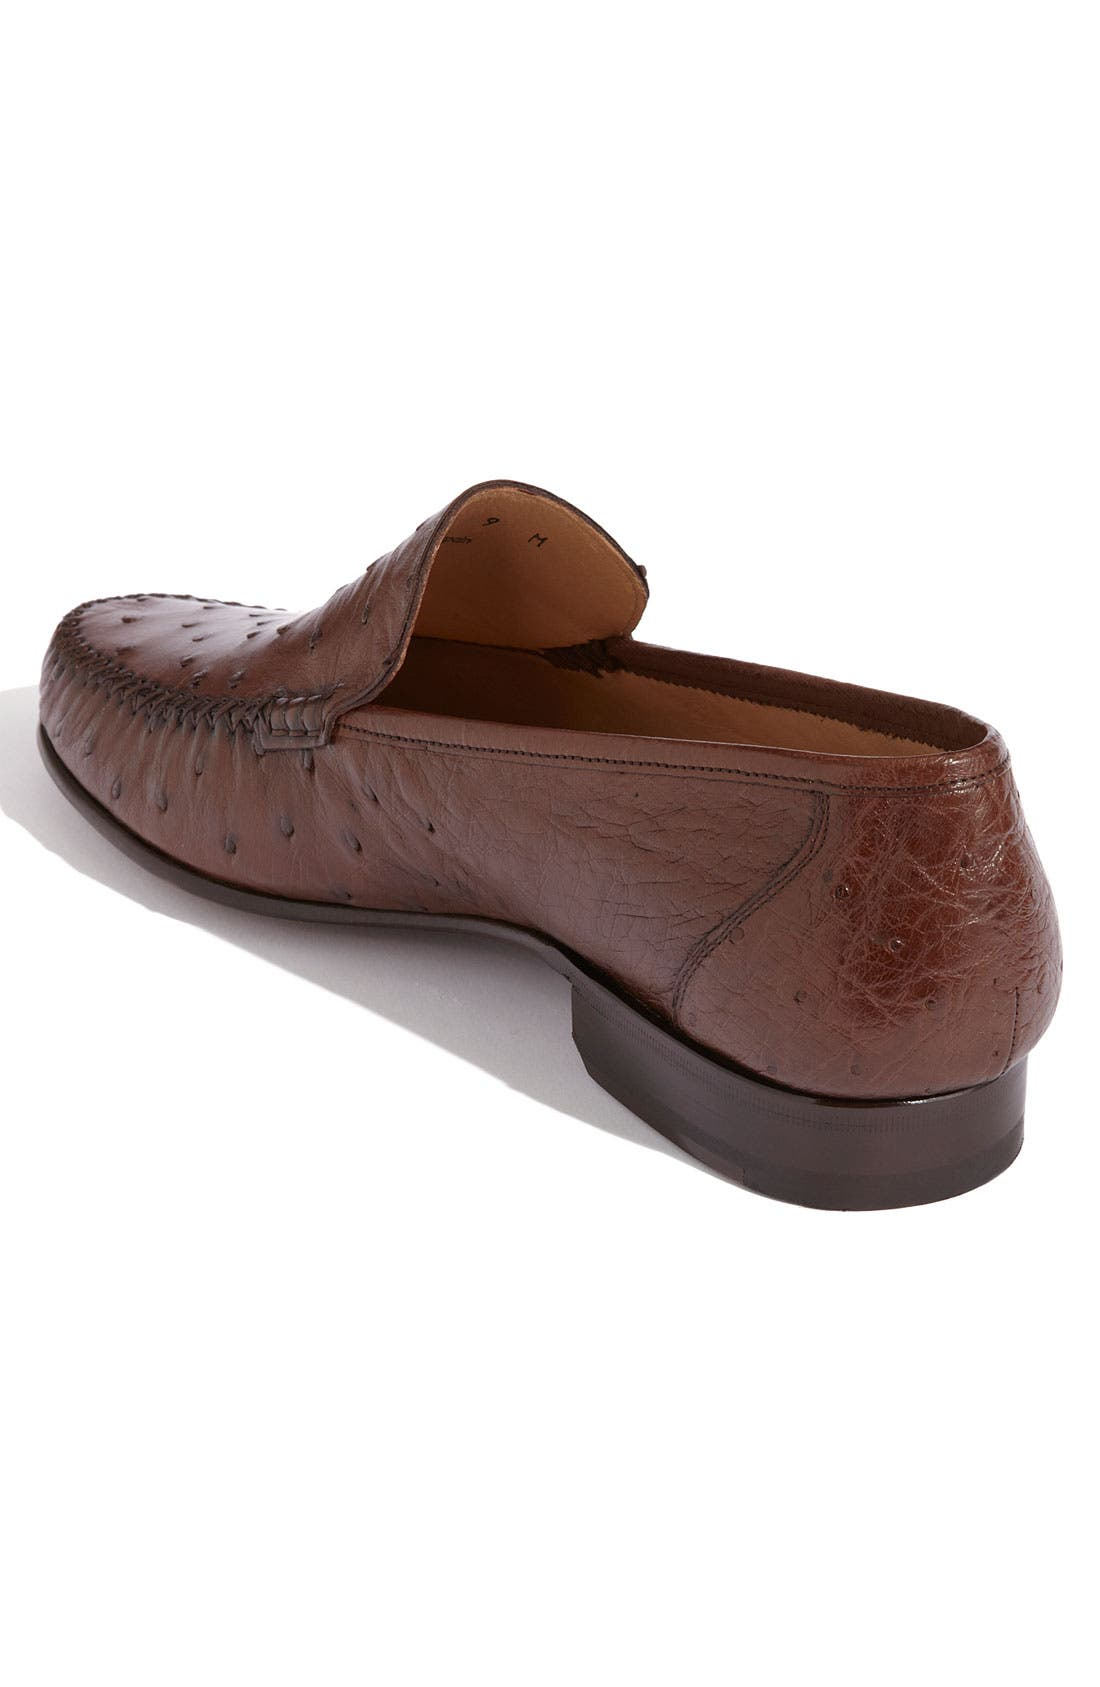 Alternate Image 2  - Magnanni 'Solea' Ostrich Loafer